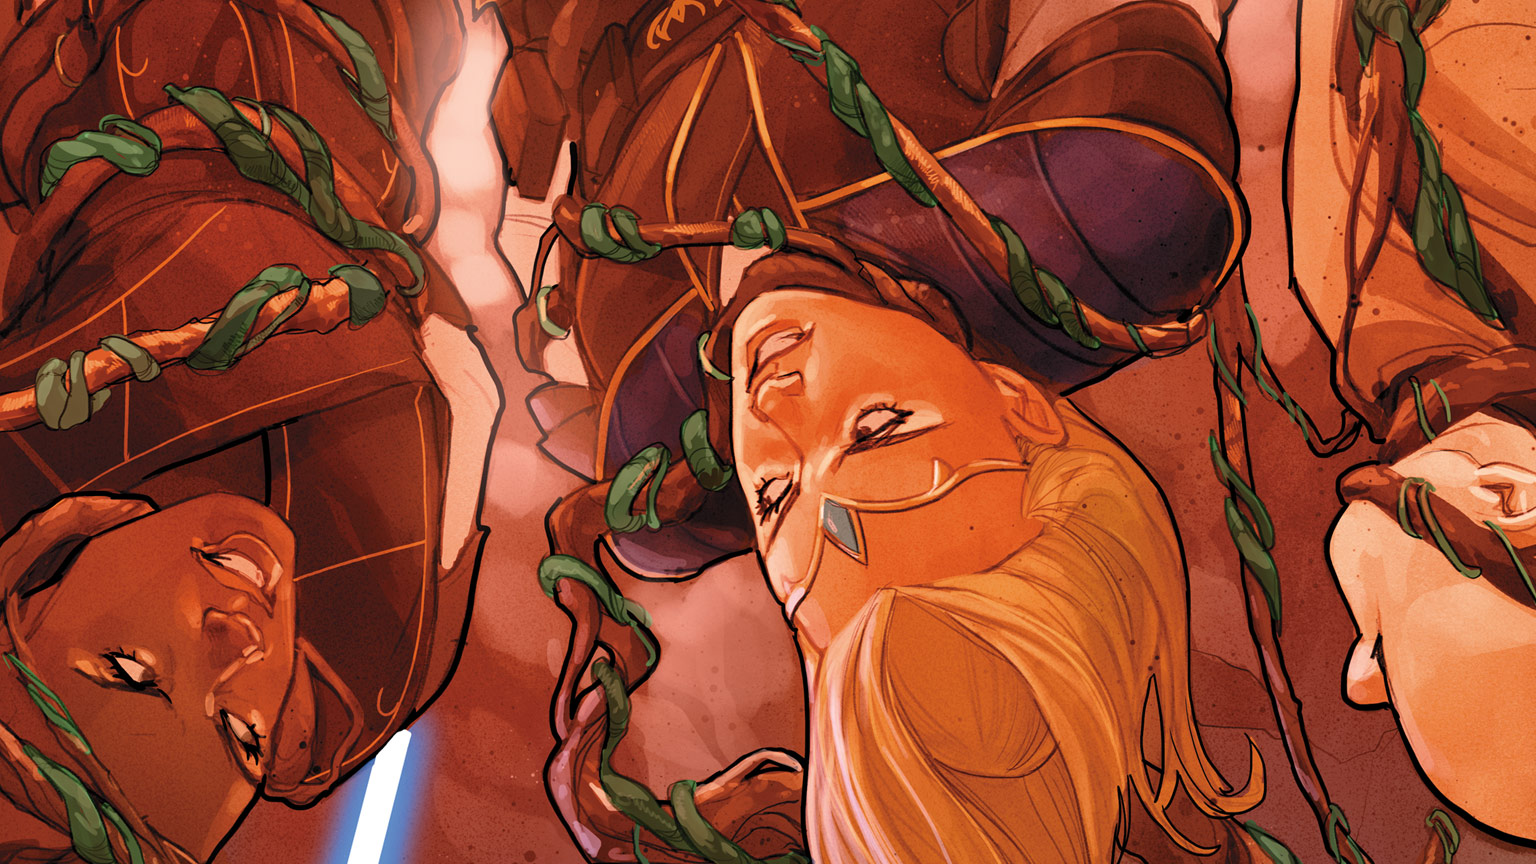 Marvel's Star Wars: The High Republic #4 cover